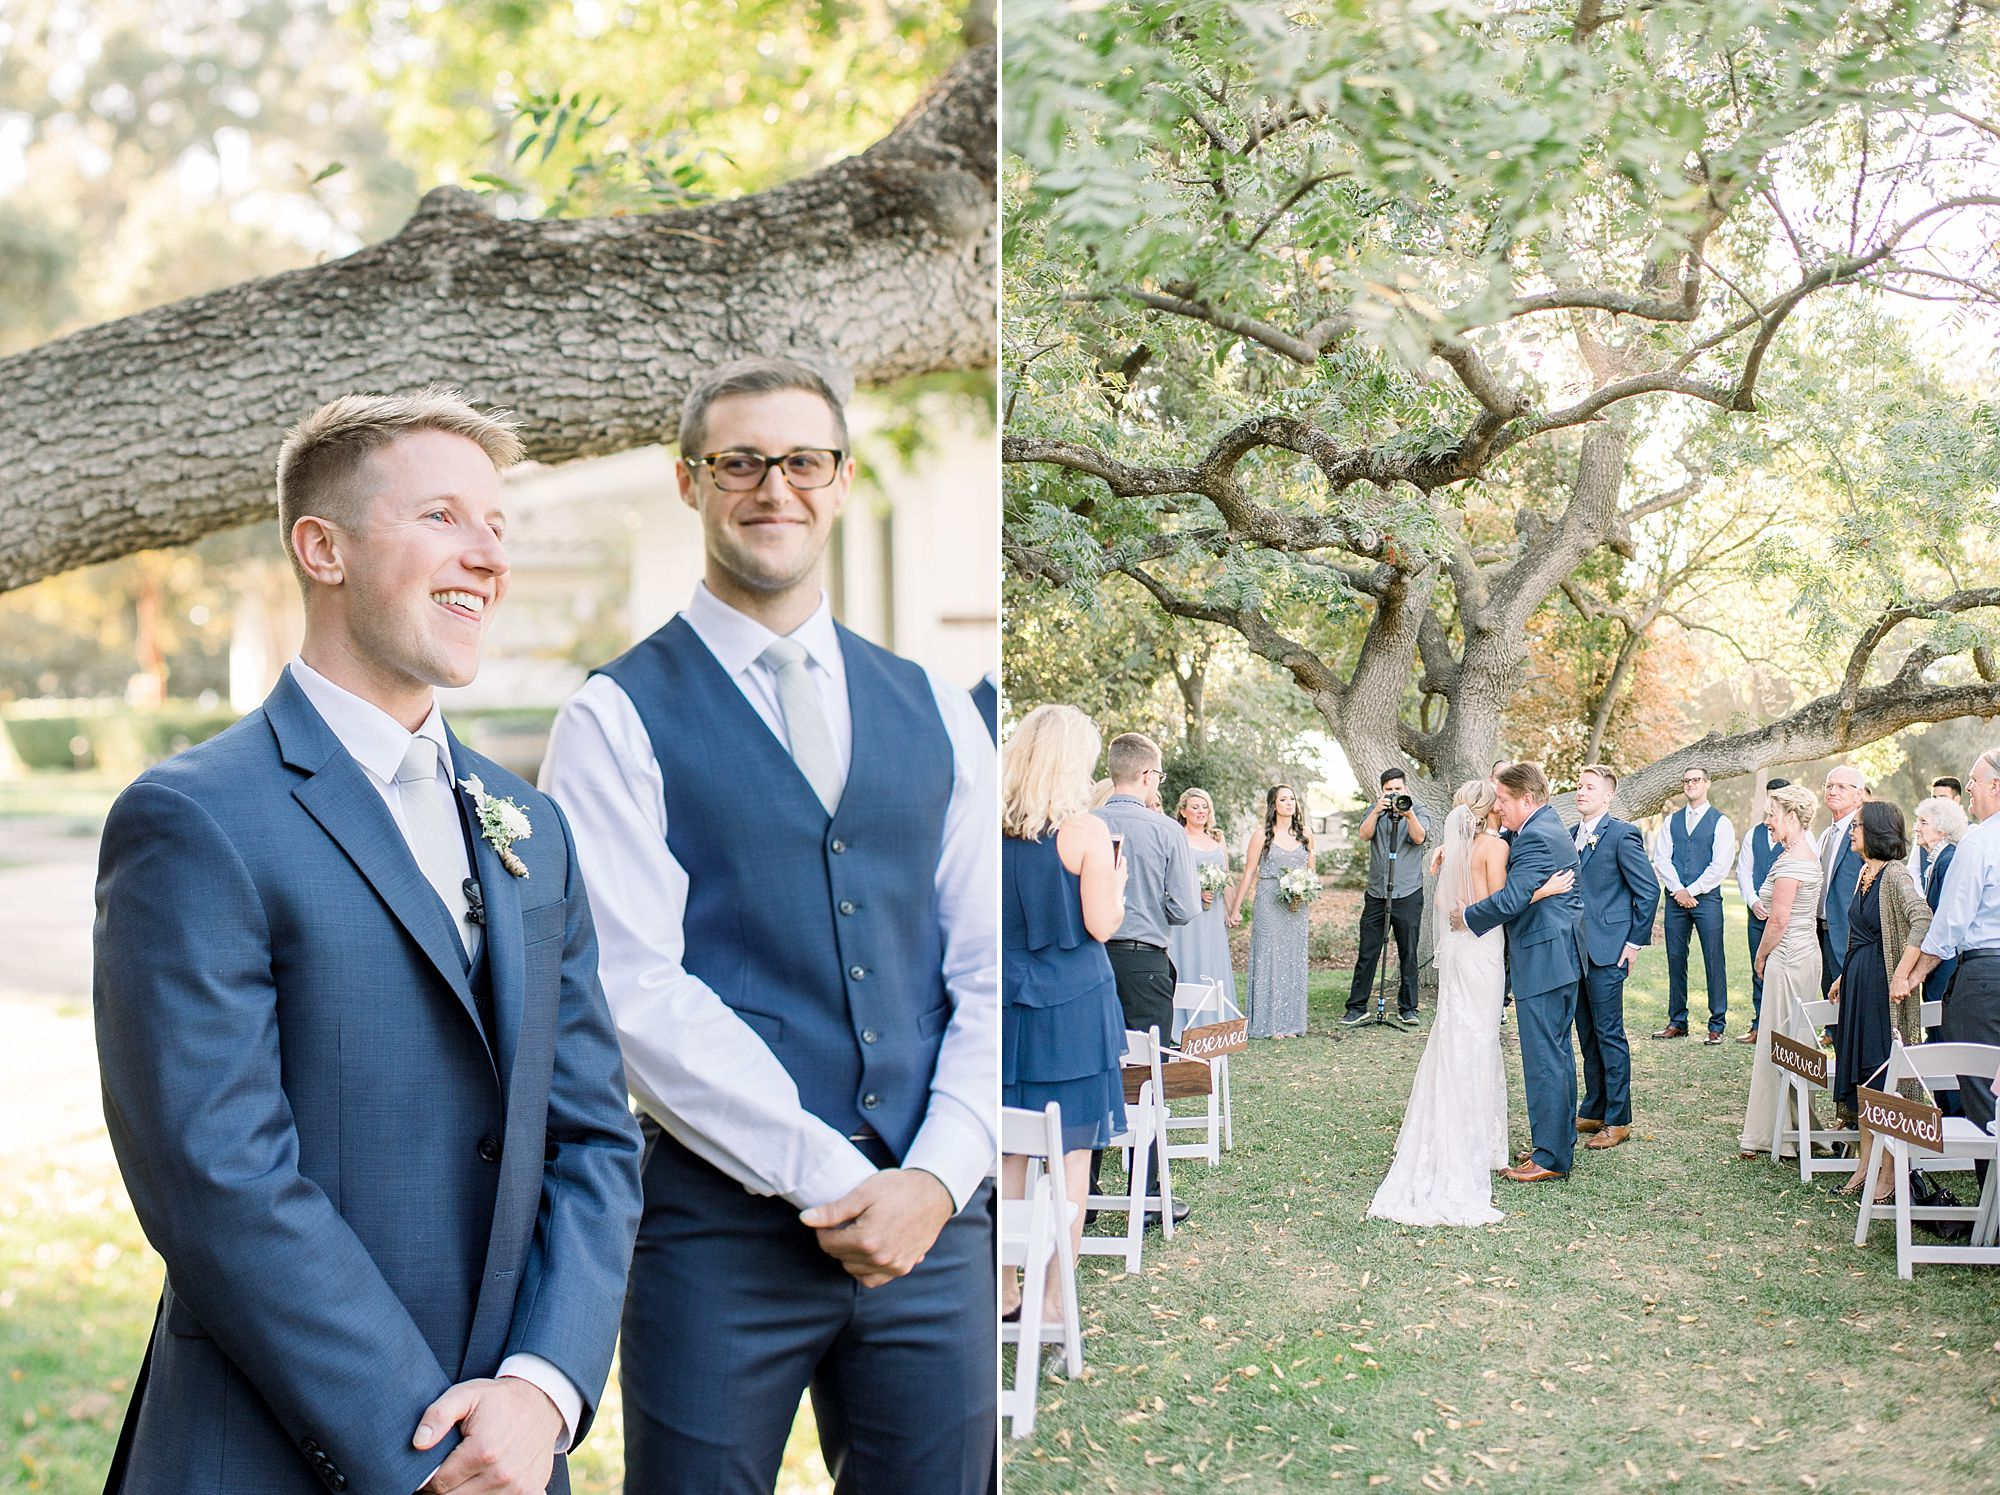 The Maples Wedding in Woodland California - Ashley Baumgartner - Sacramento Wedding Photographer - Sacramento Film Photographer_0036.jpg